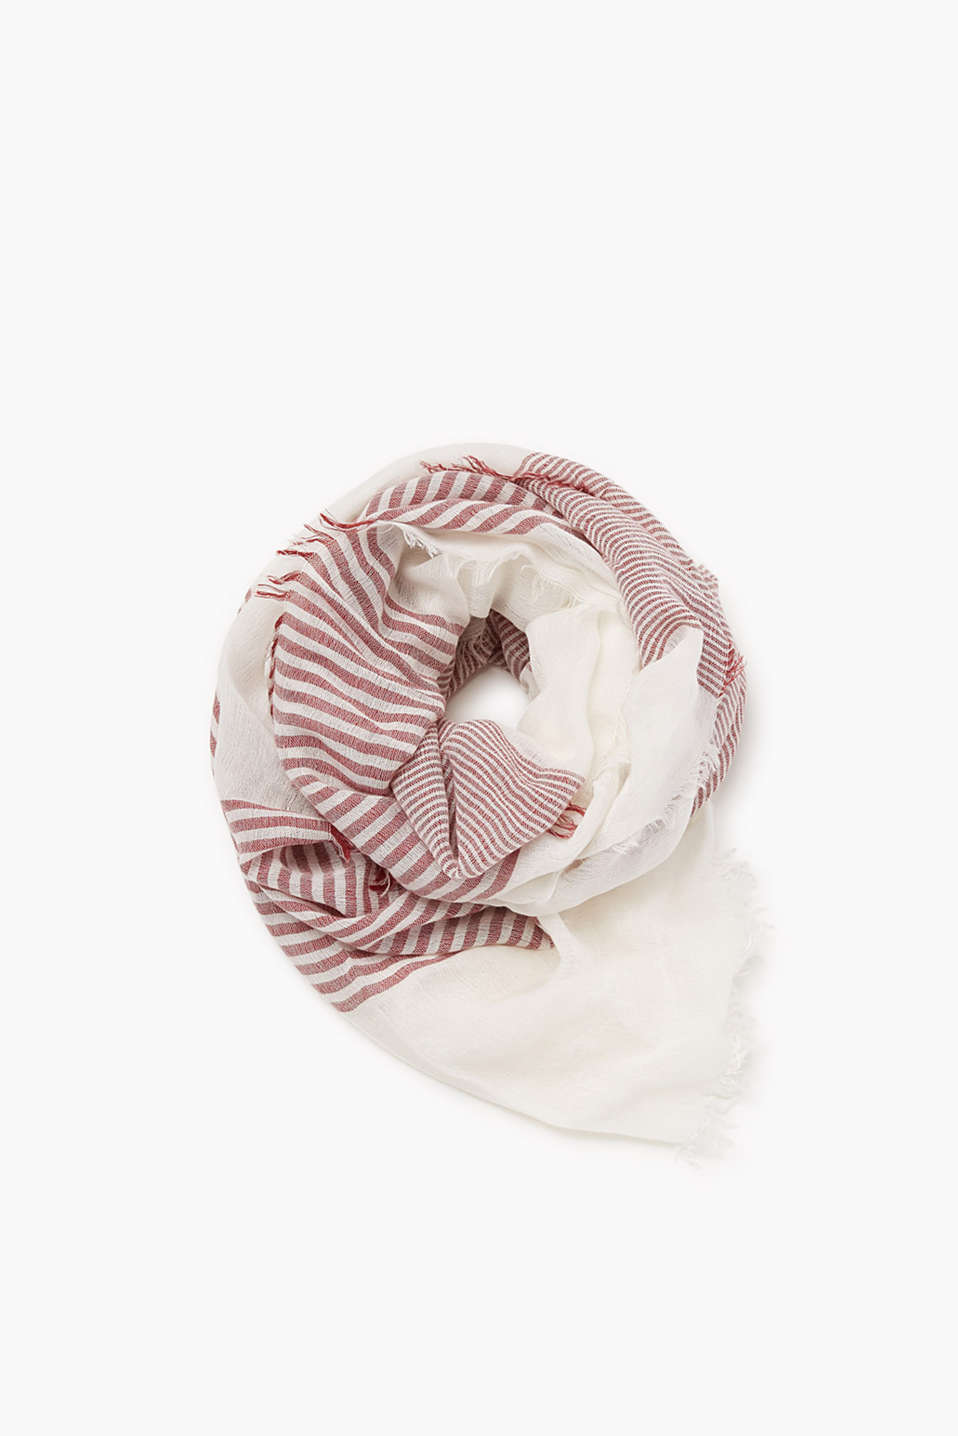 XXL scarf made of soft, lightweight woven fabric with a percentage of wool